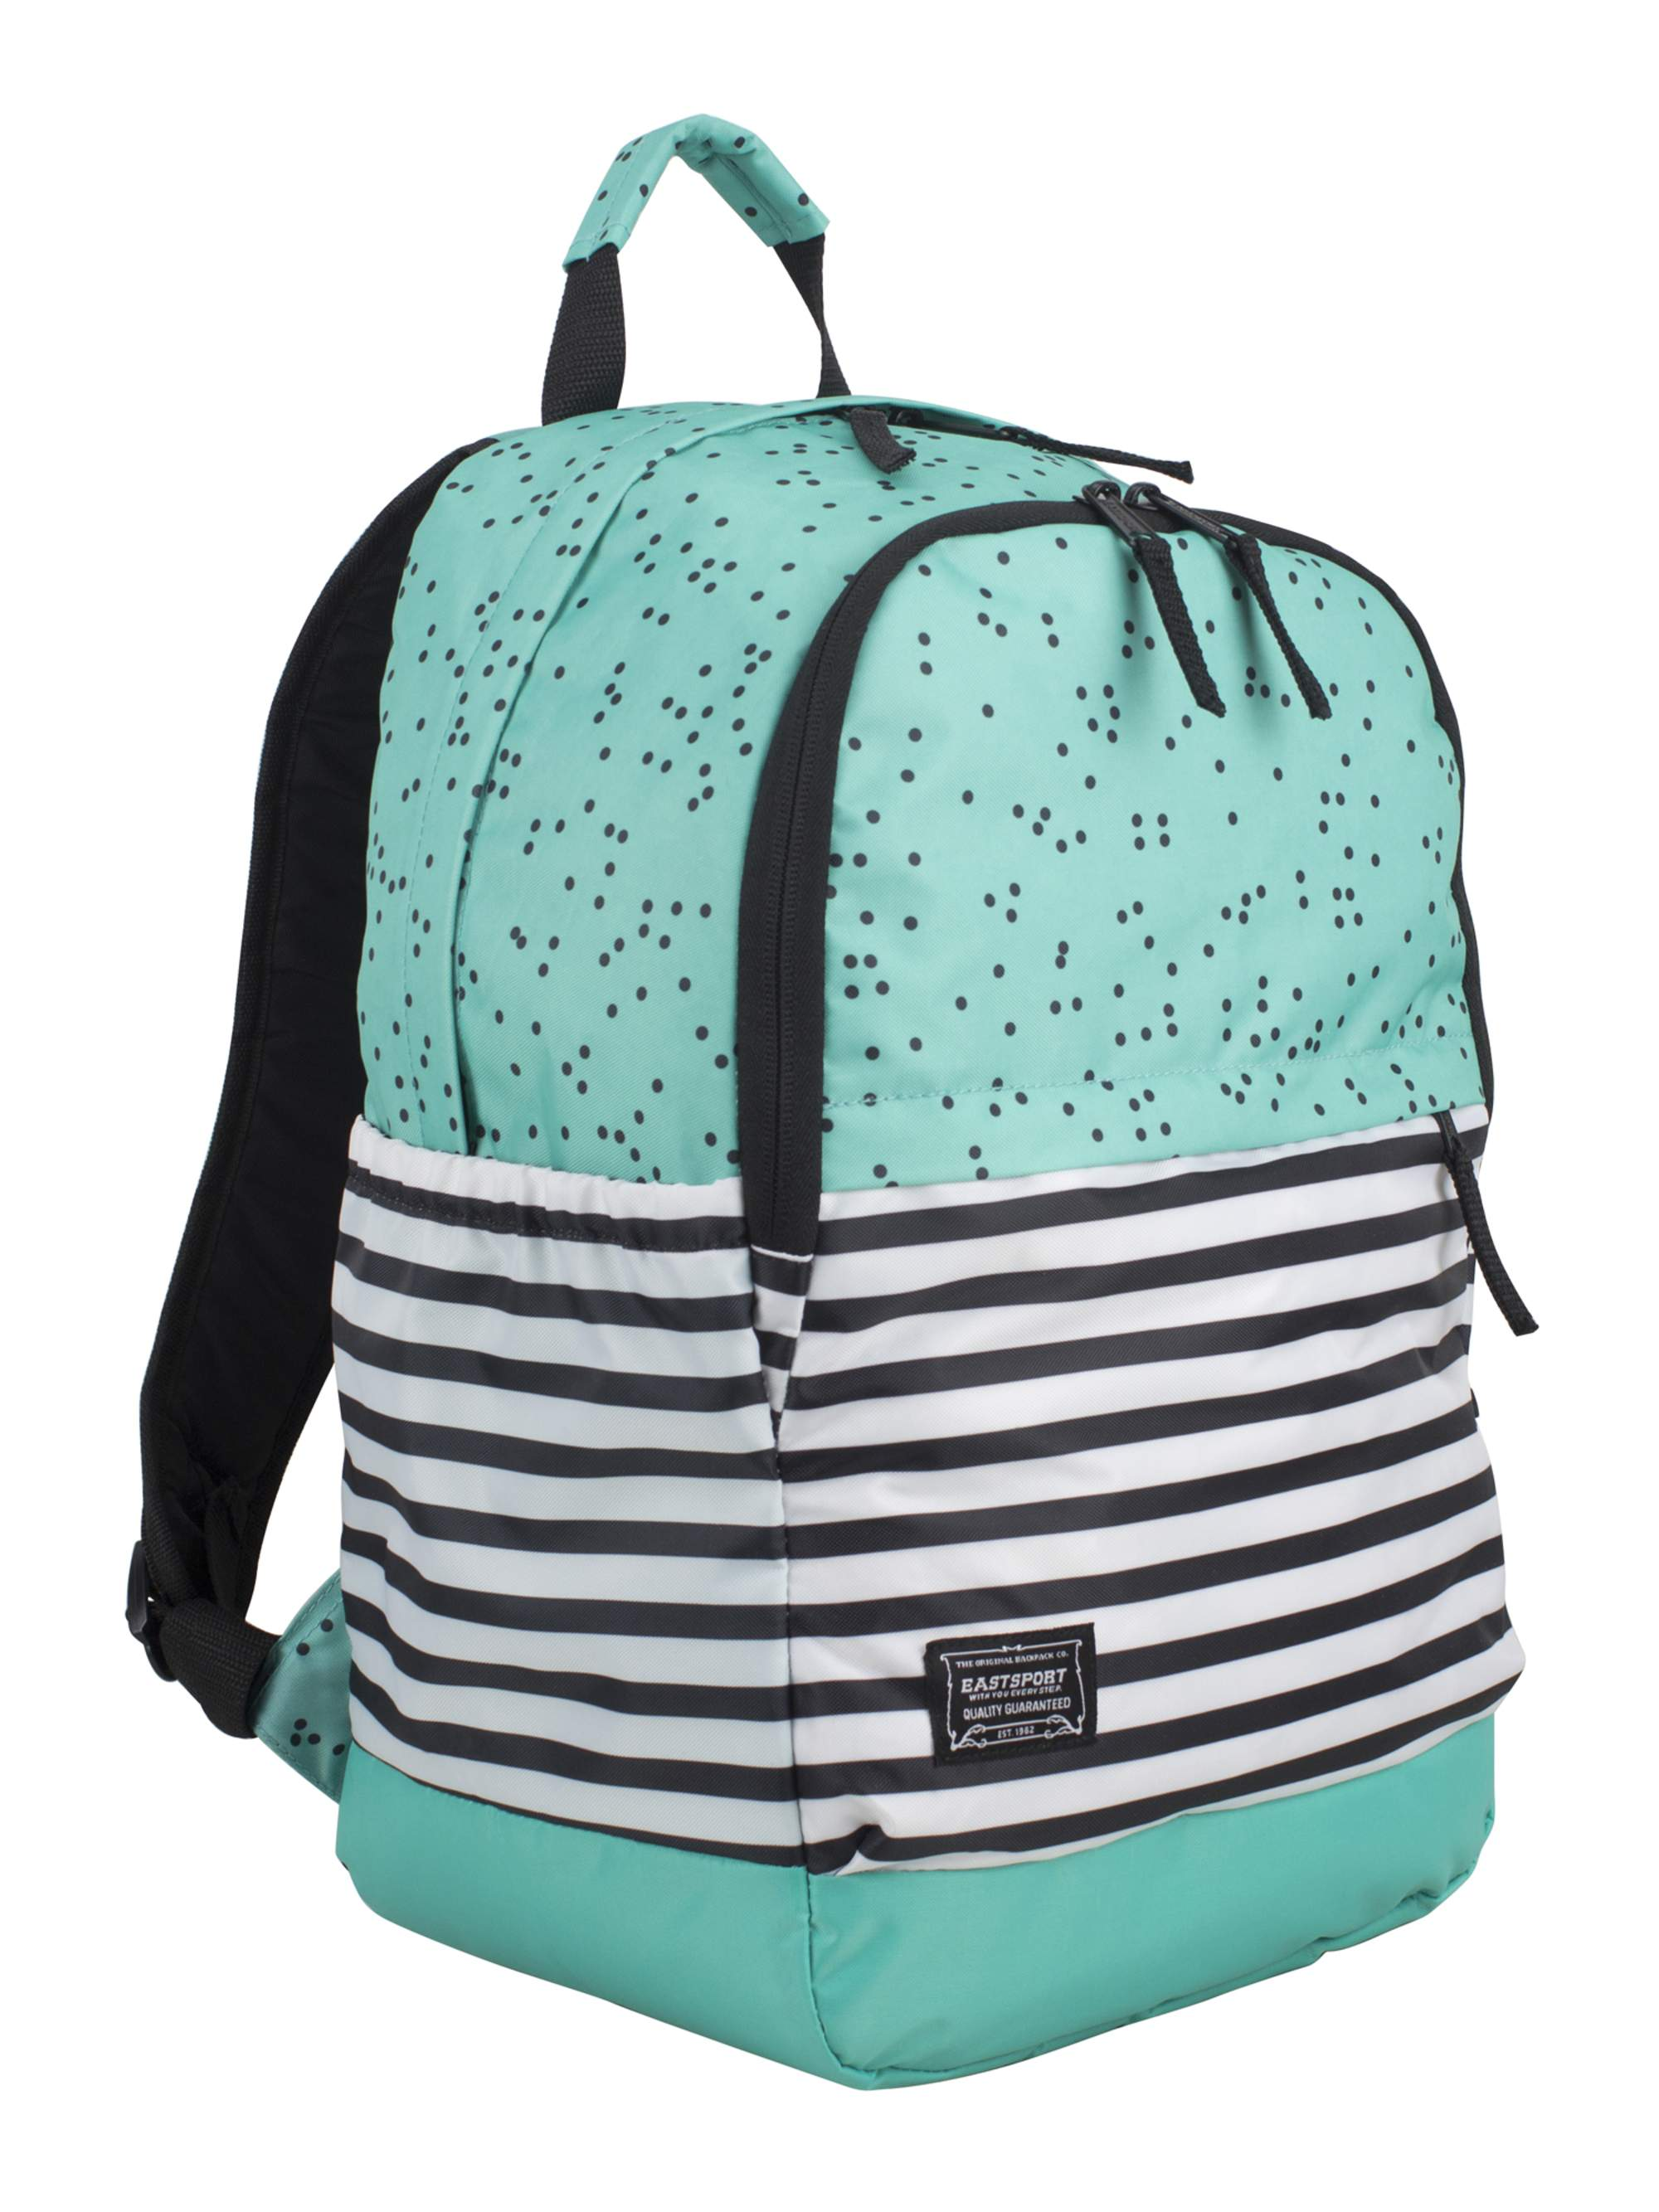 Eastsport Emma Girl's Student Backpack with Computer Pocket by Bijoux International